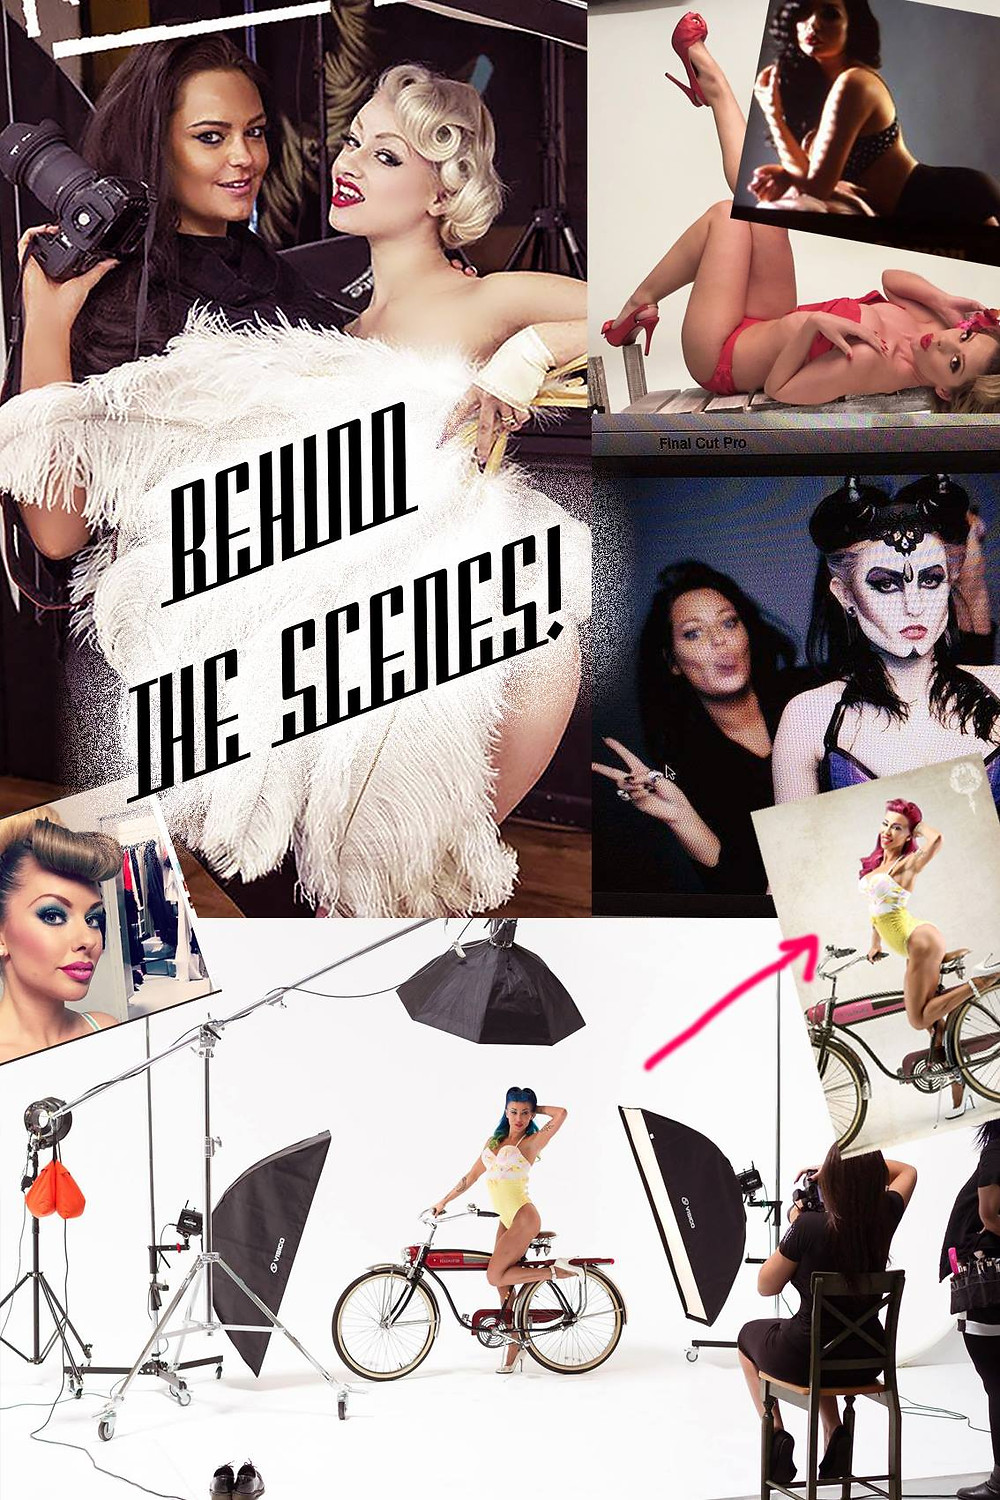 Behind the scenes at DollHouse Photography Make Over Studio